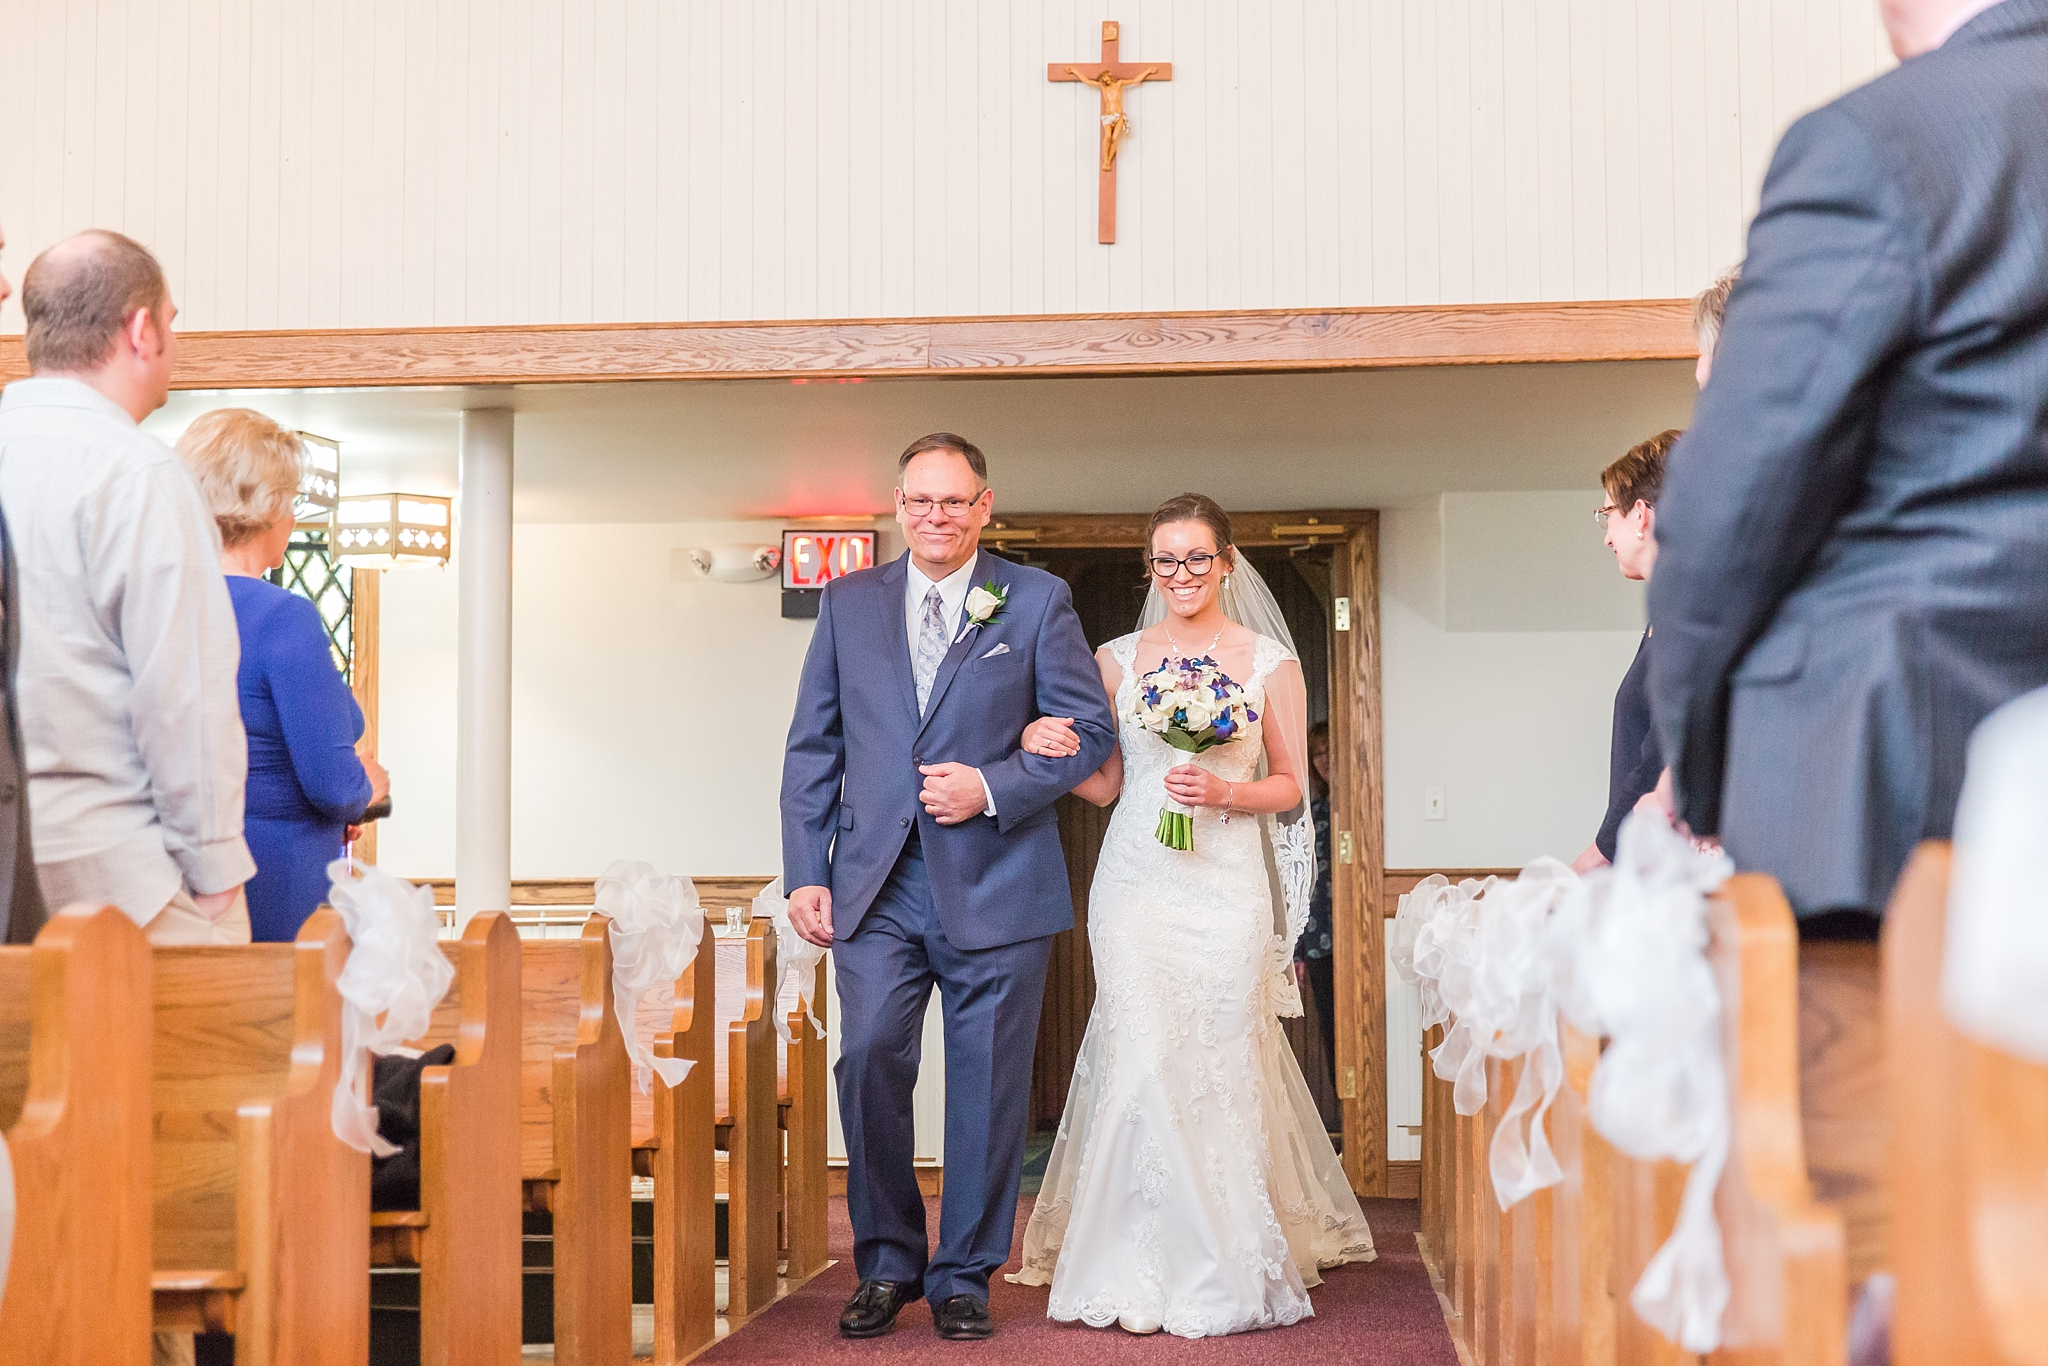 classic-timeless-candid-wedding-photos-in-grosse-ile-and-trenton-michigan-by-courtney-carolyn-photography_0015.jpg